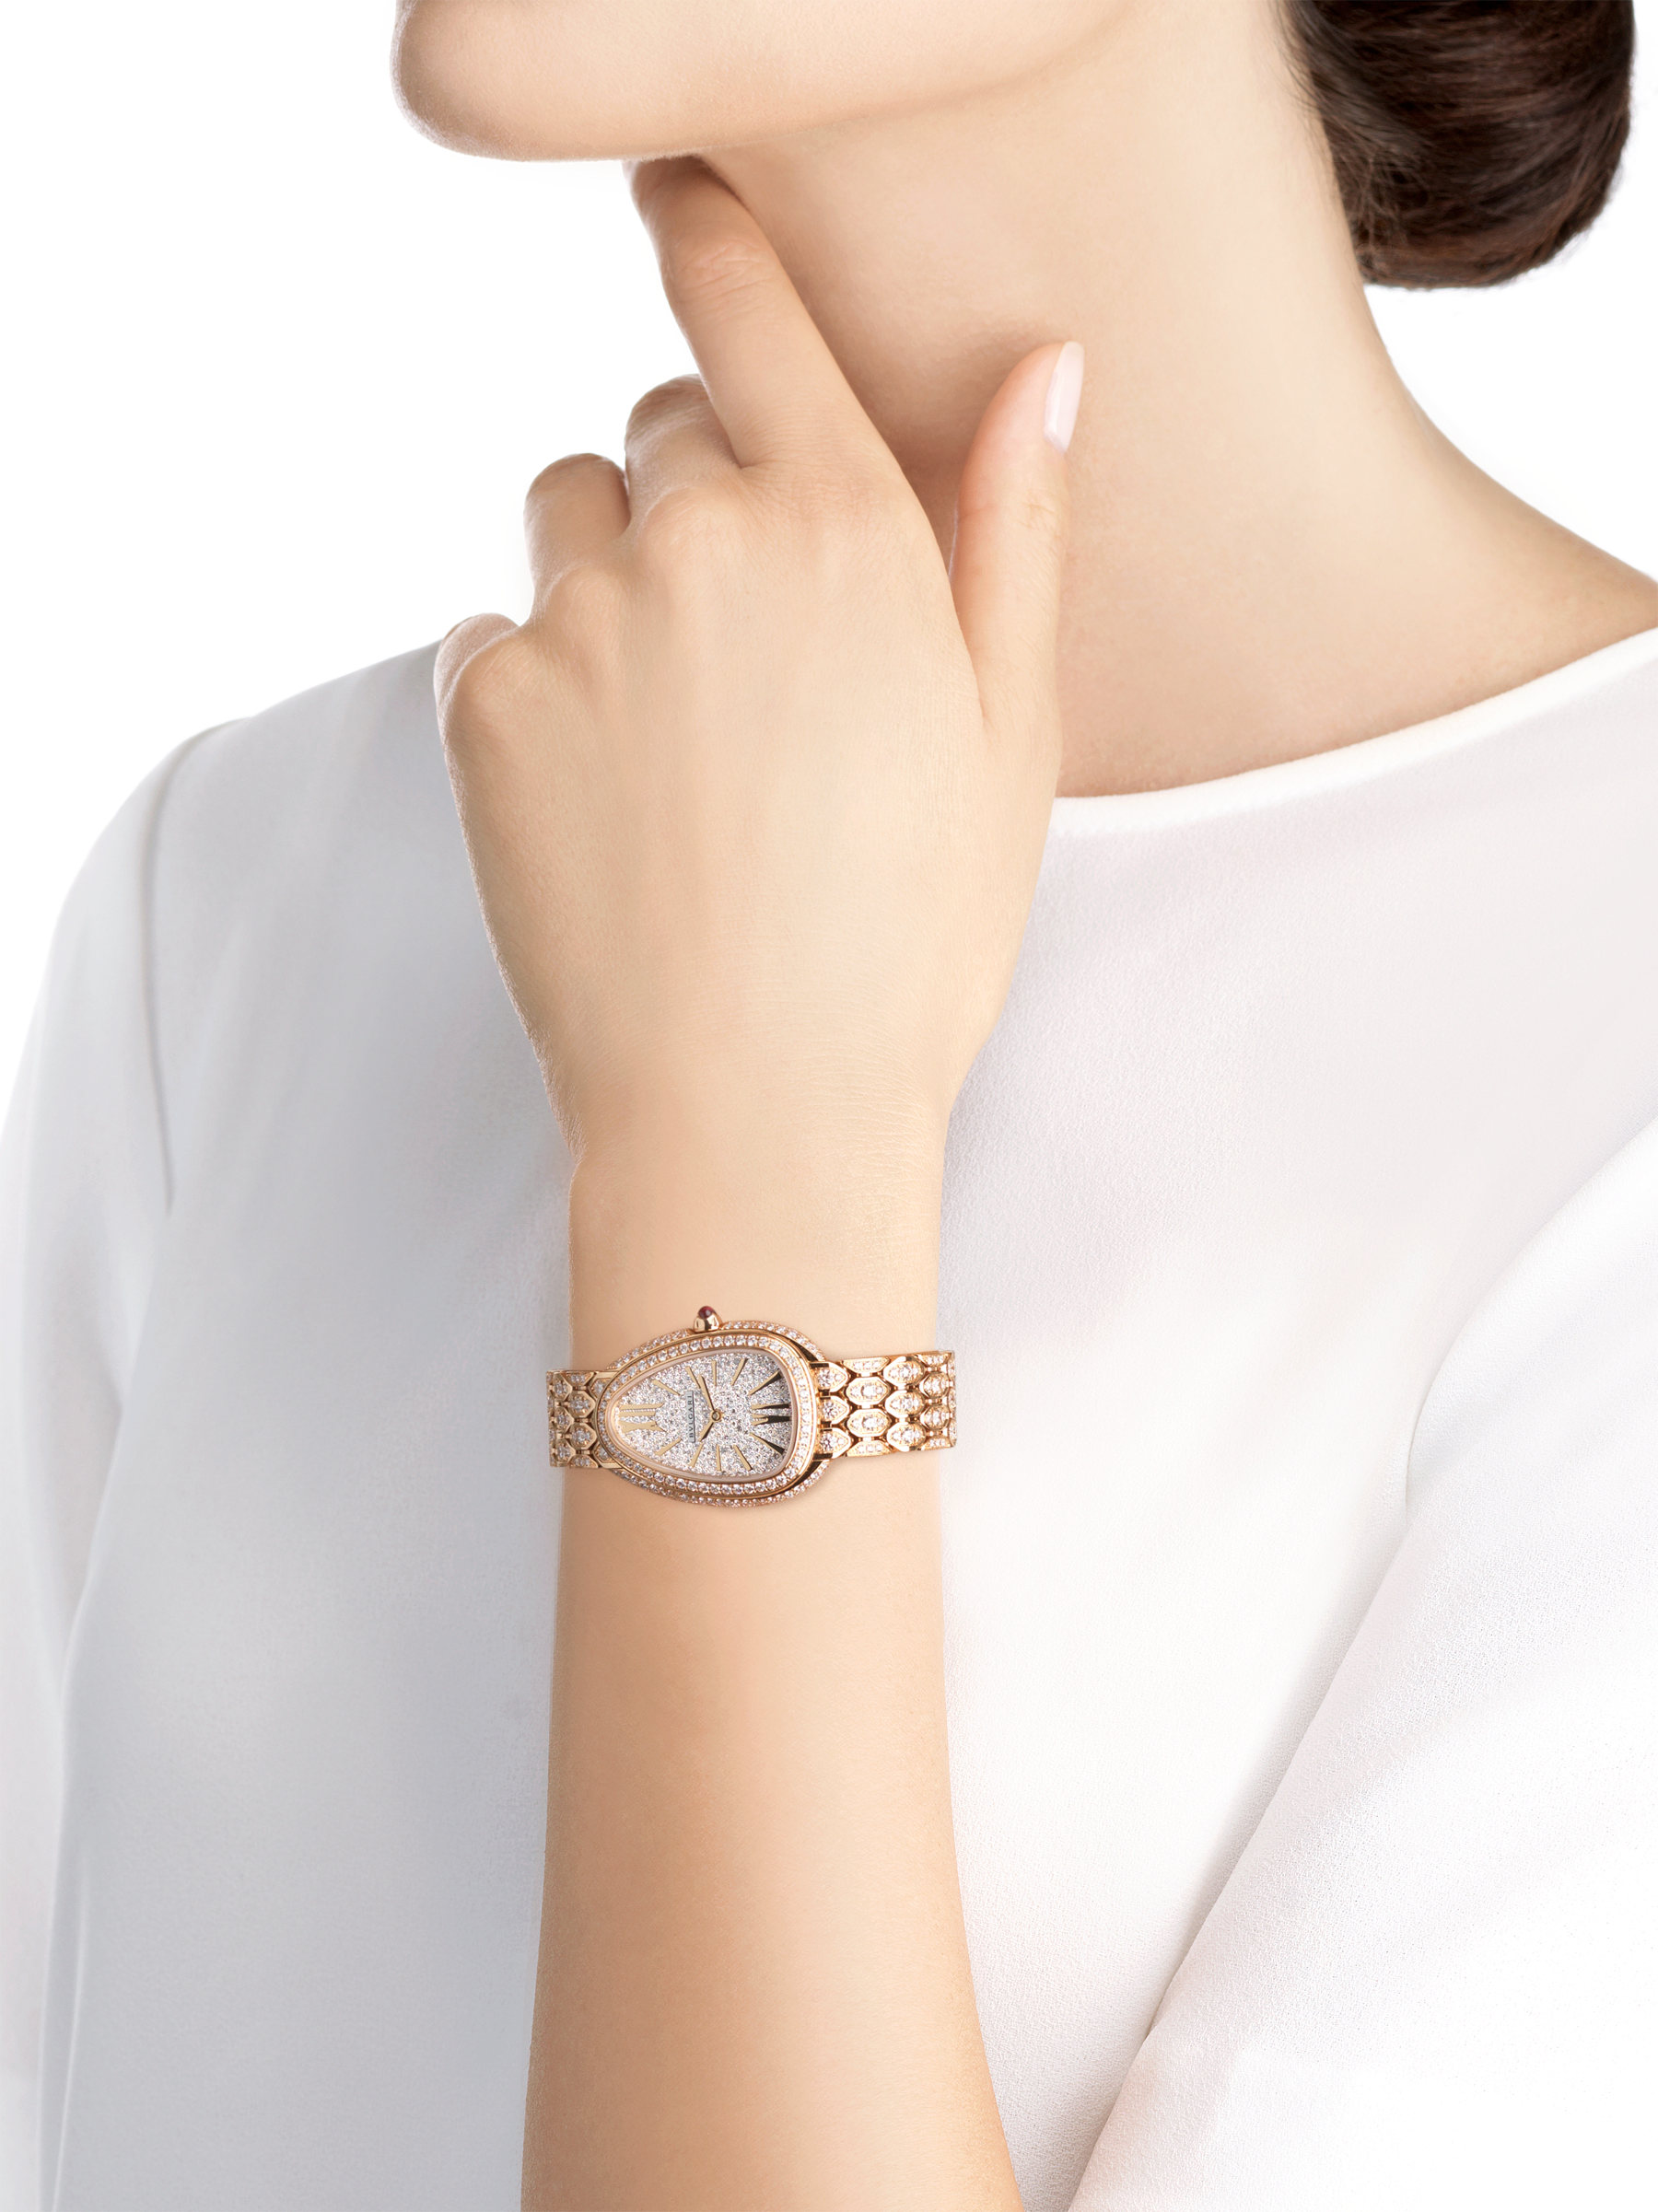 Serpenti Seduttori watch with 18 kt rose gold case and bracelet both set with diamonds, and full pavé dial 103160 image 4